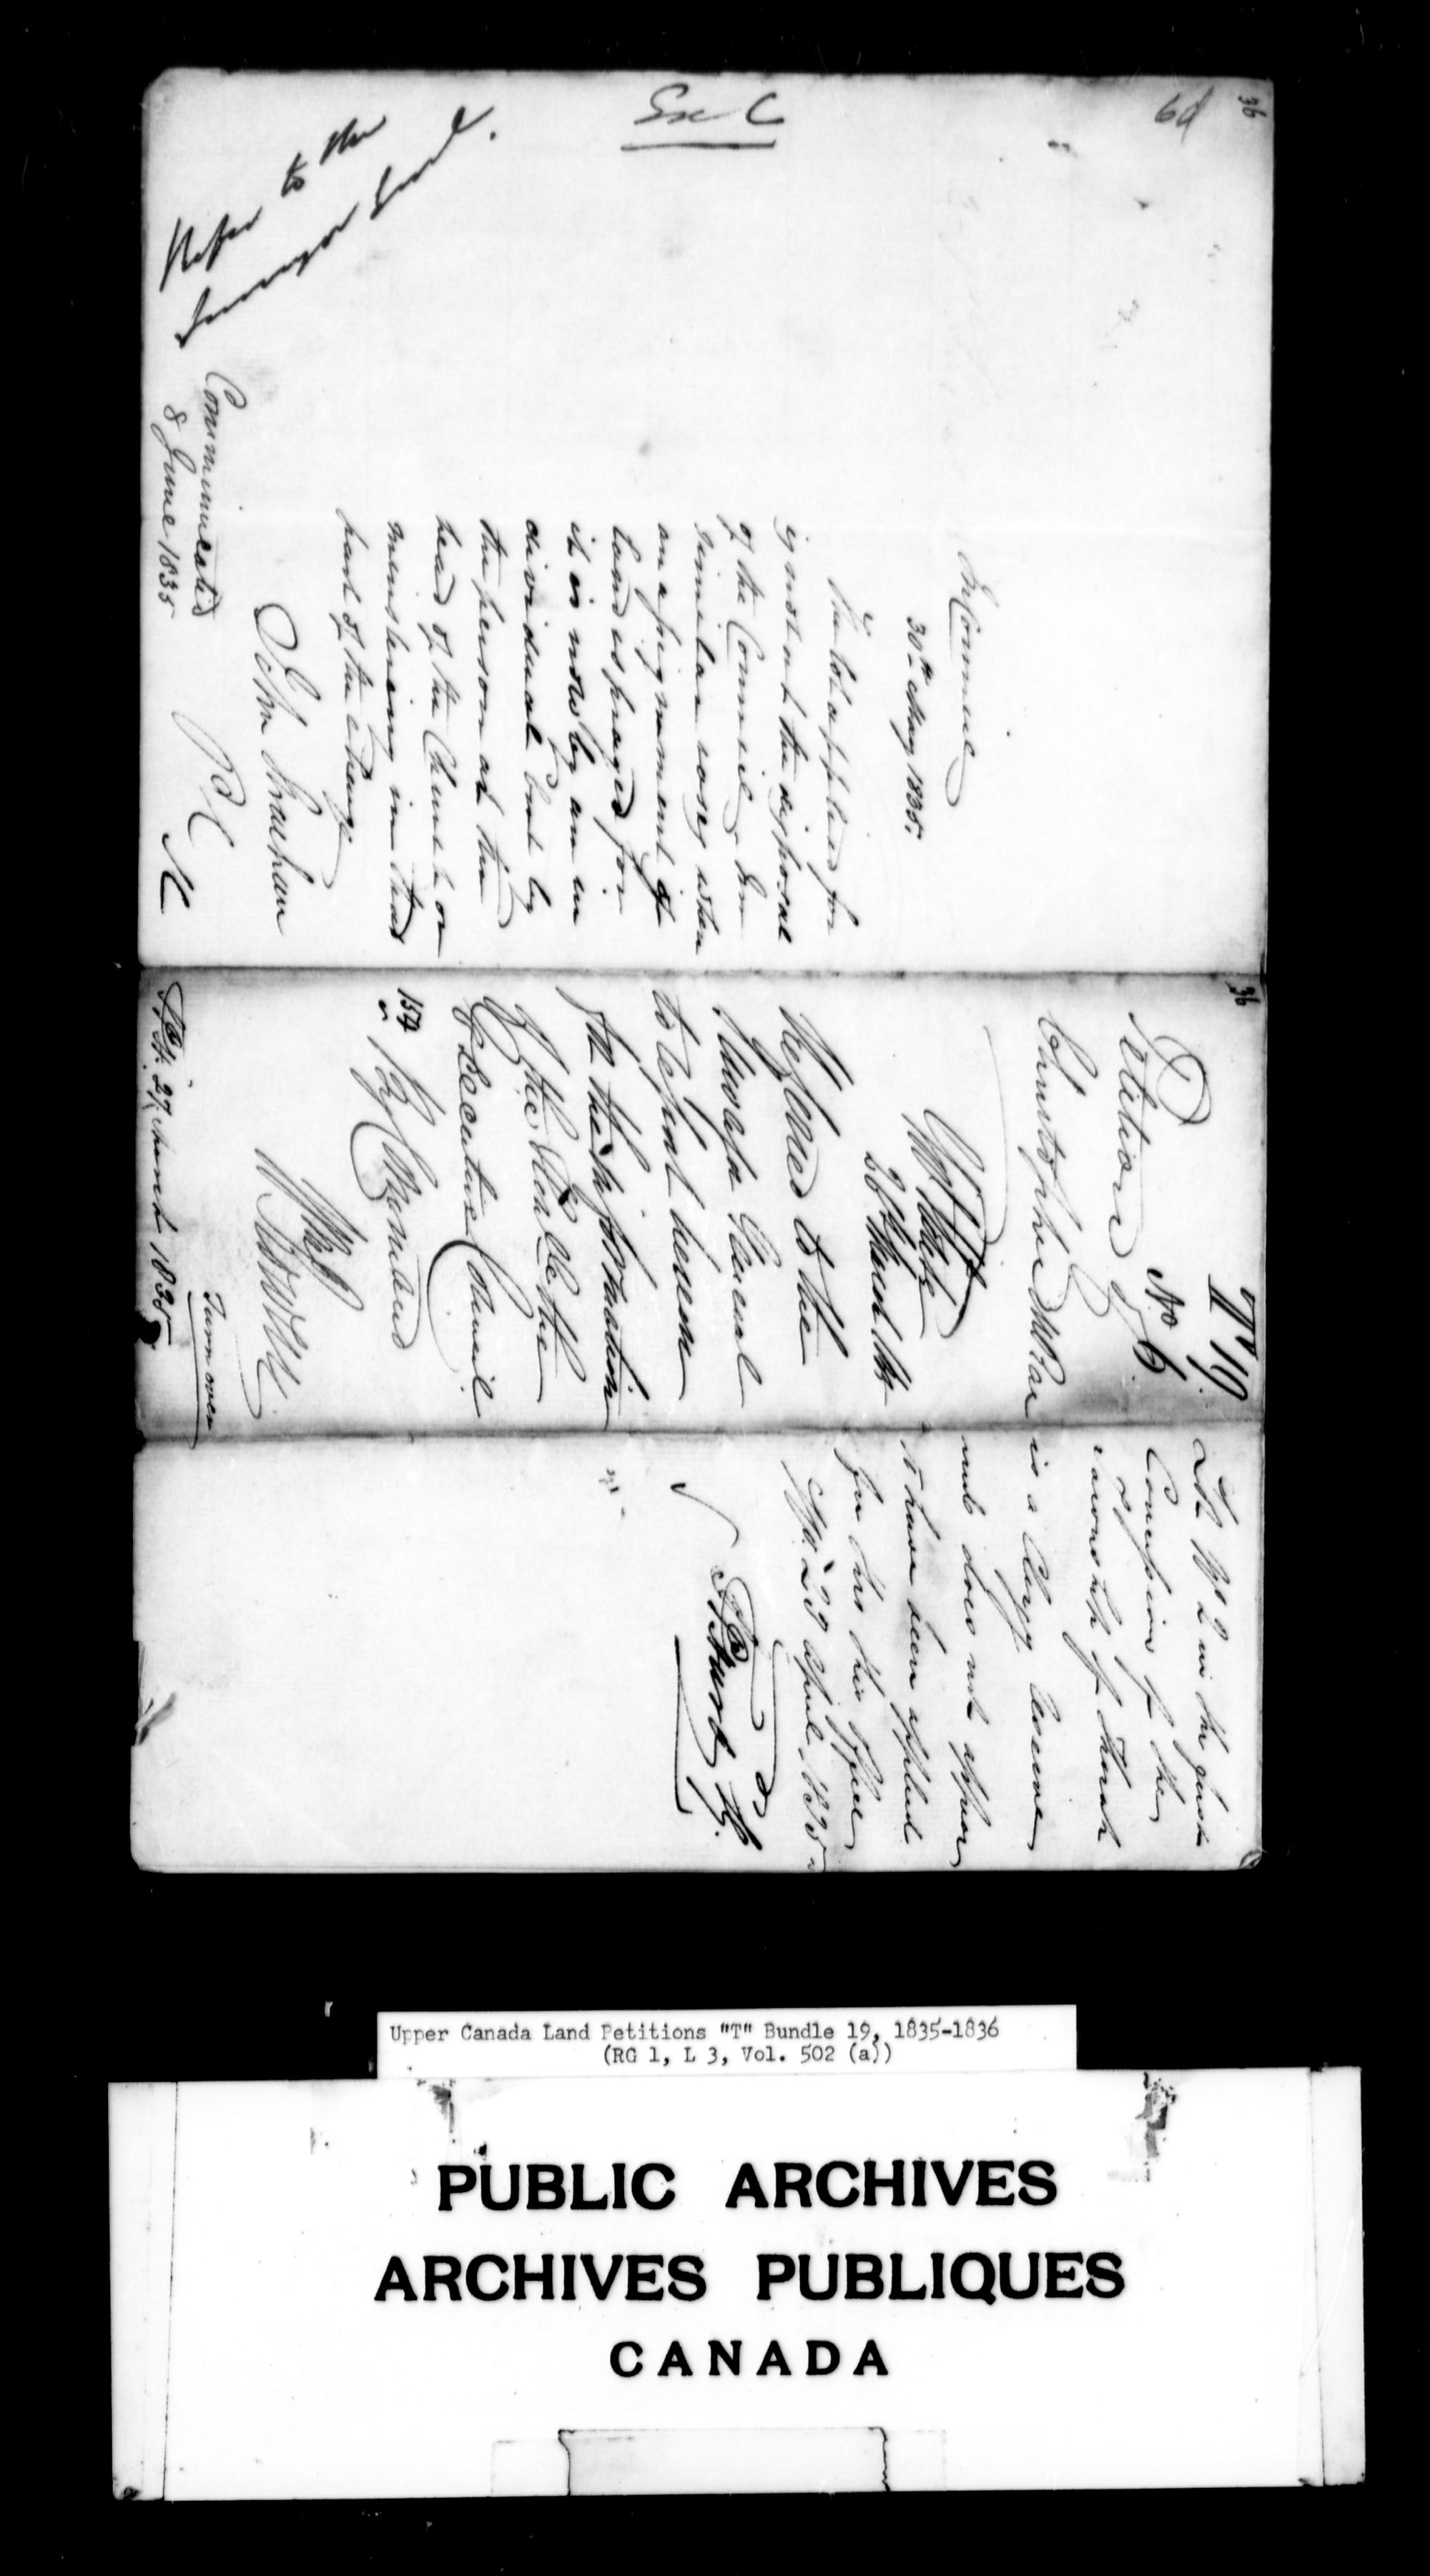 Title: Upper Canada Land Petitions (1763-1865) - Mikan Number: 205131 - Microform: c-2836